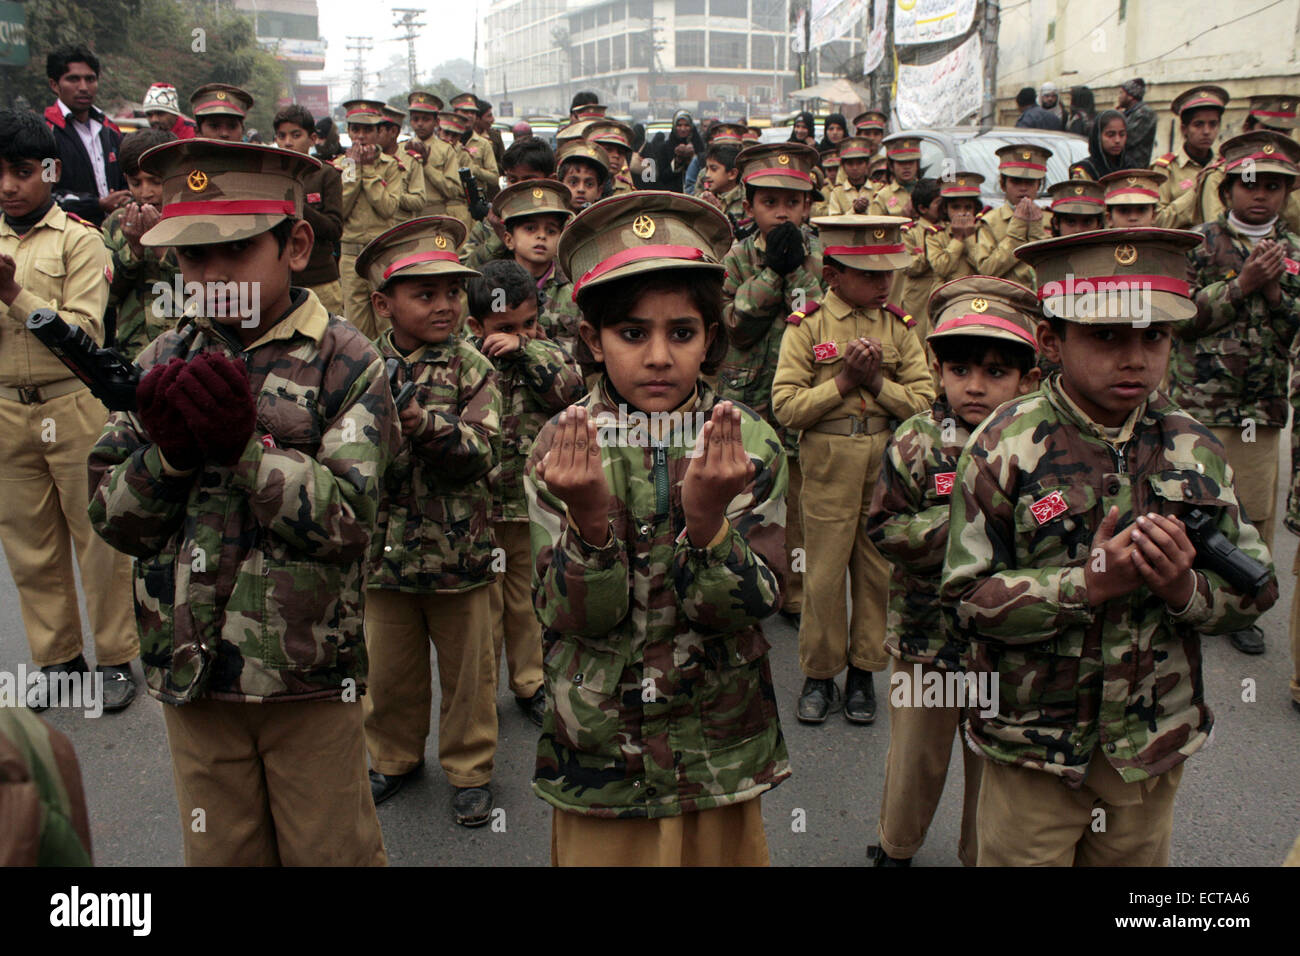 Lahore. 19th Dec, 2014. Pakistani children in army uniform attend a protest against the attack on an army-run school, - Stock Image